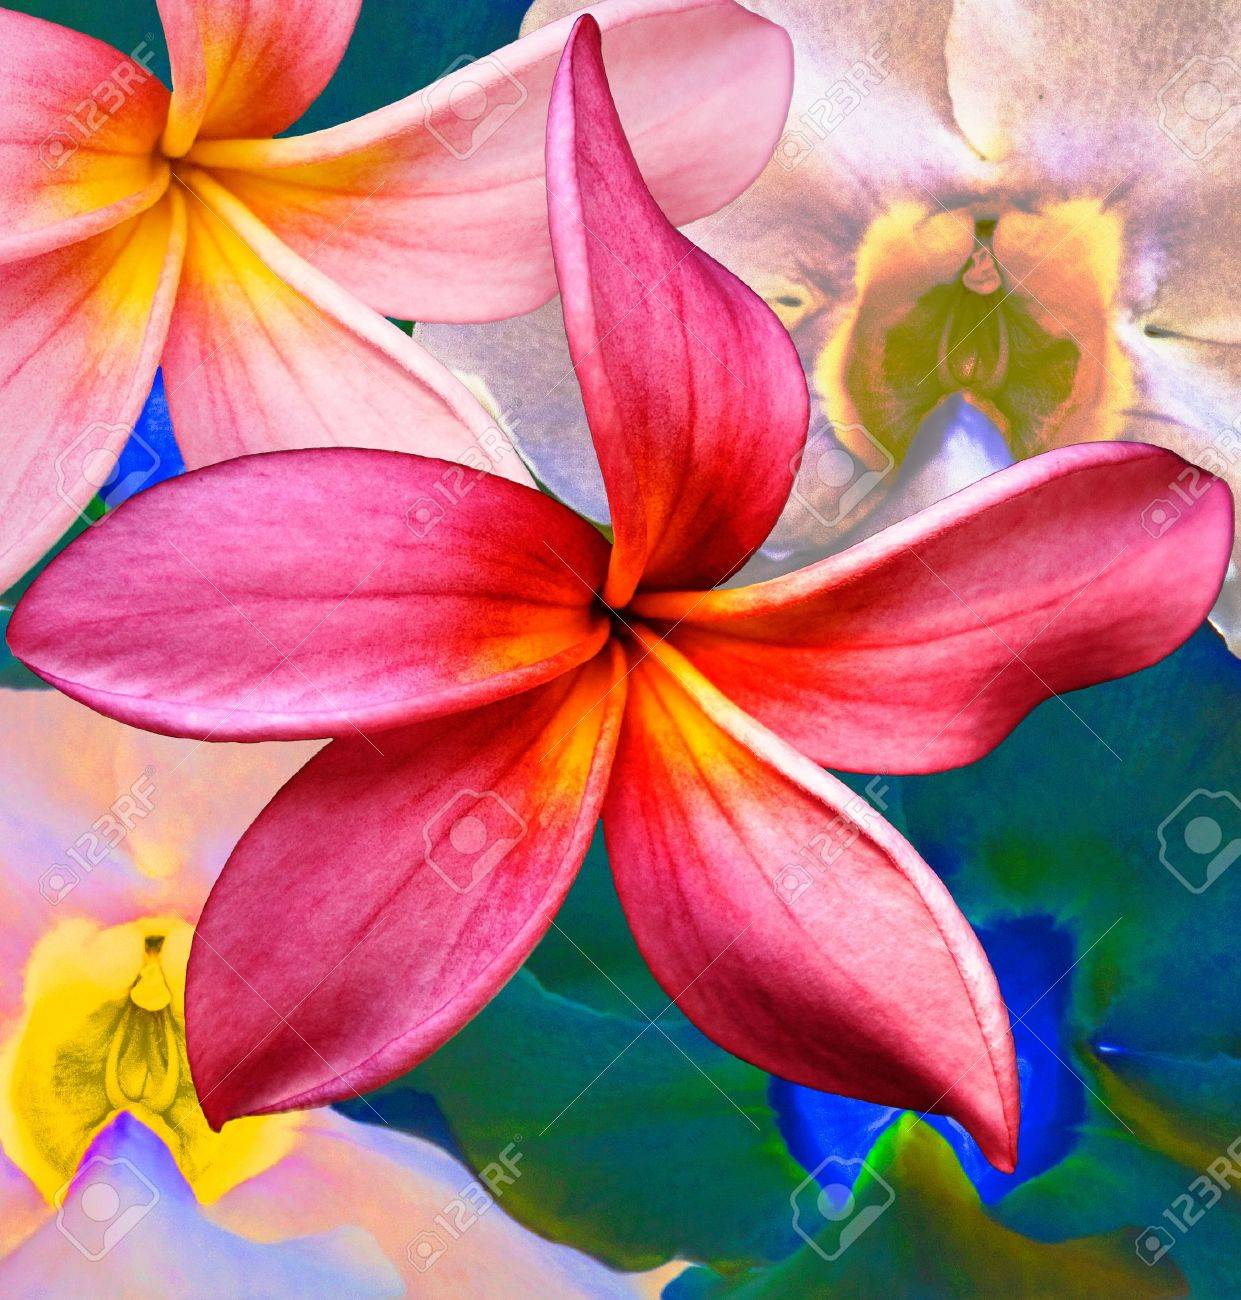 A collage of tropical flowers in a colorful spread Stock Photo - 5332245